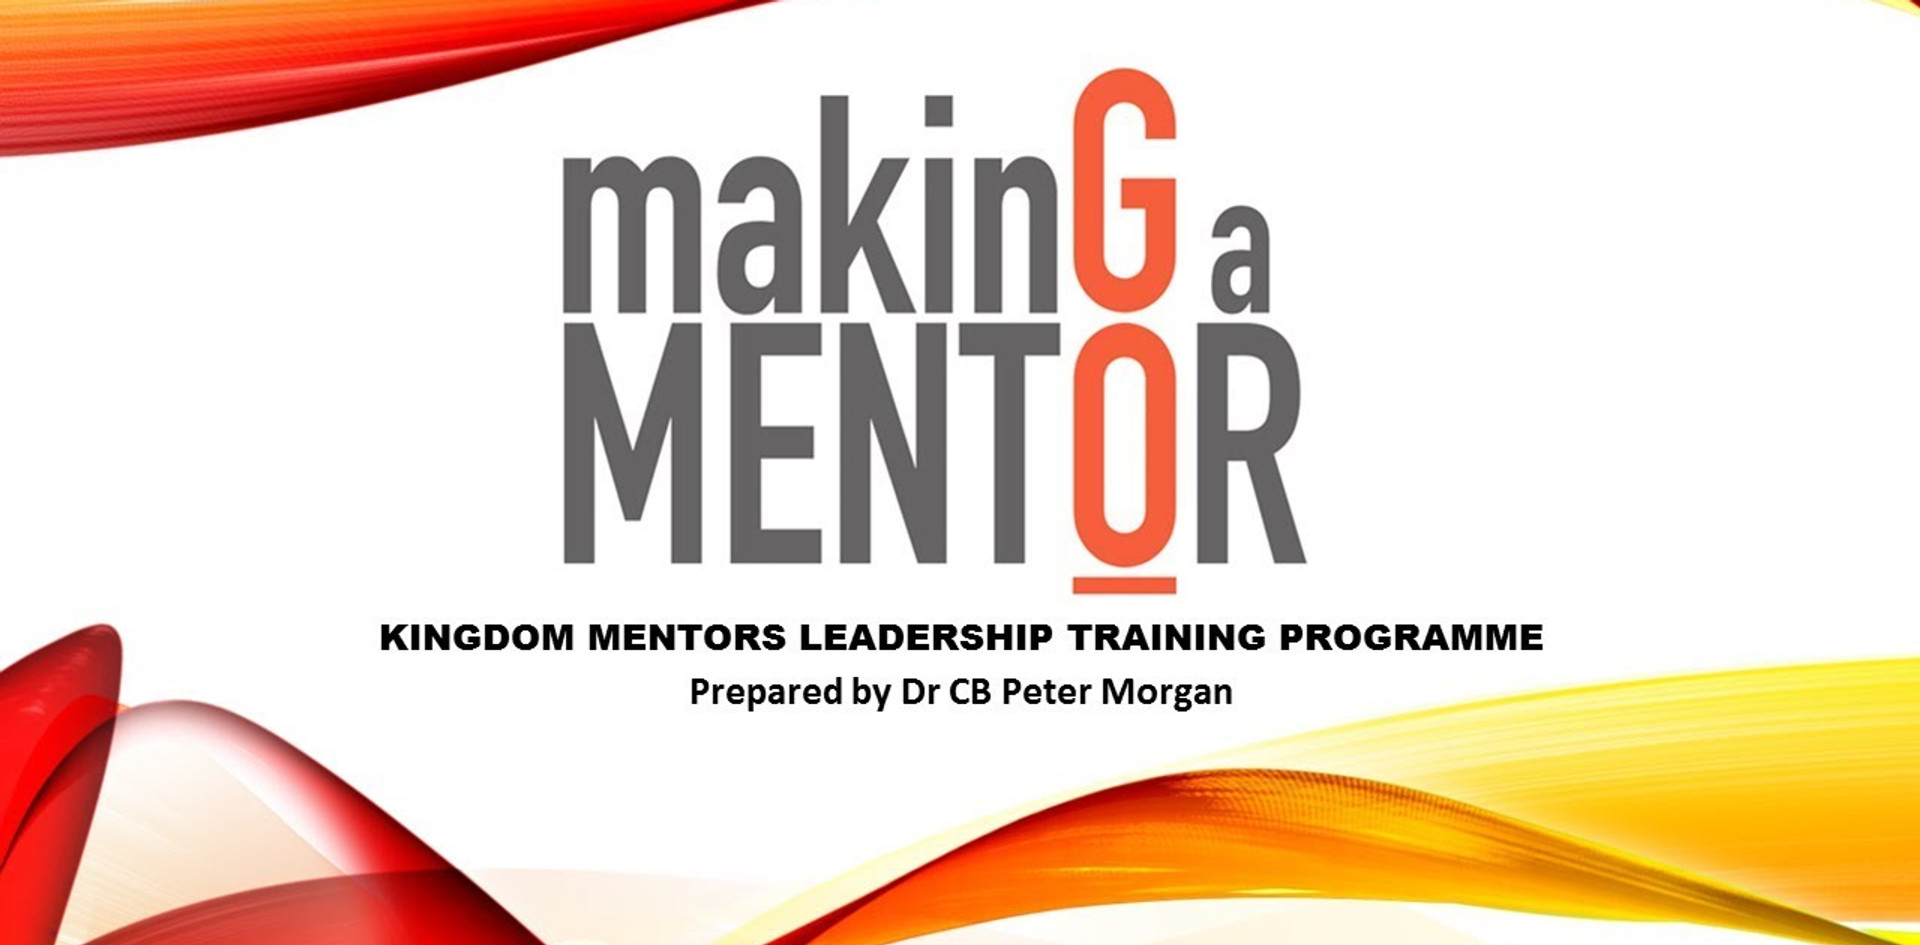 Making a Mentor